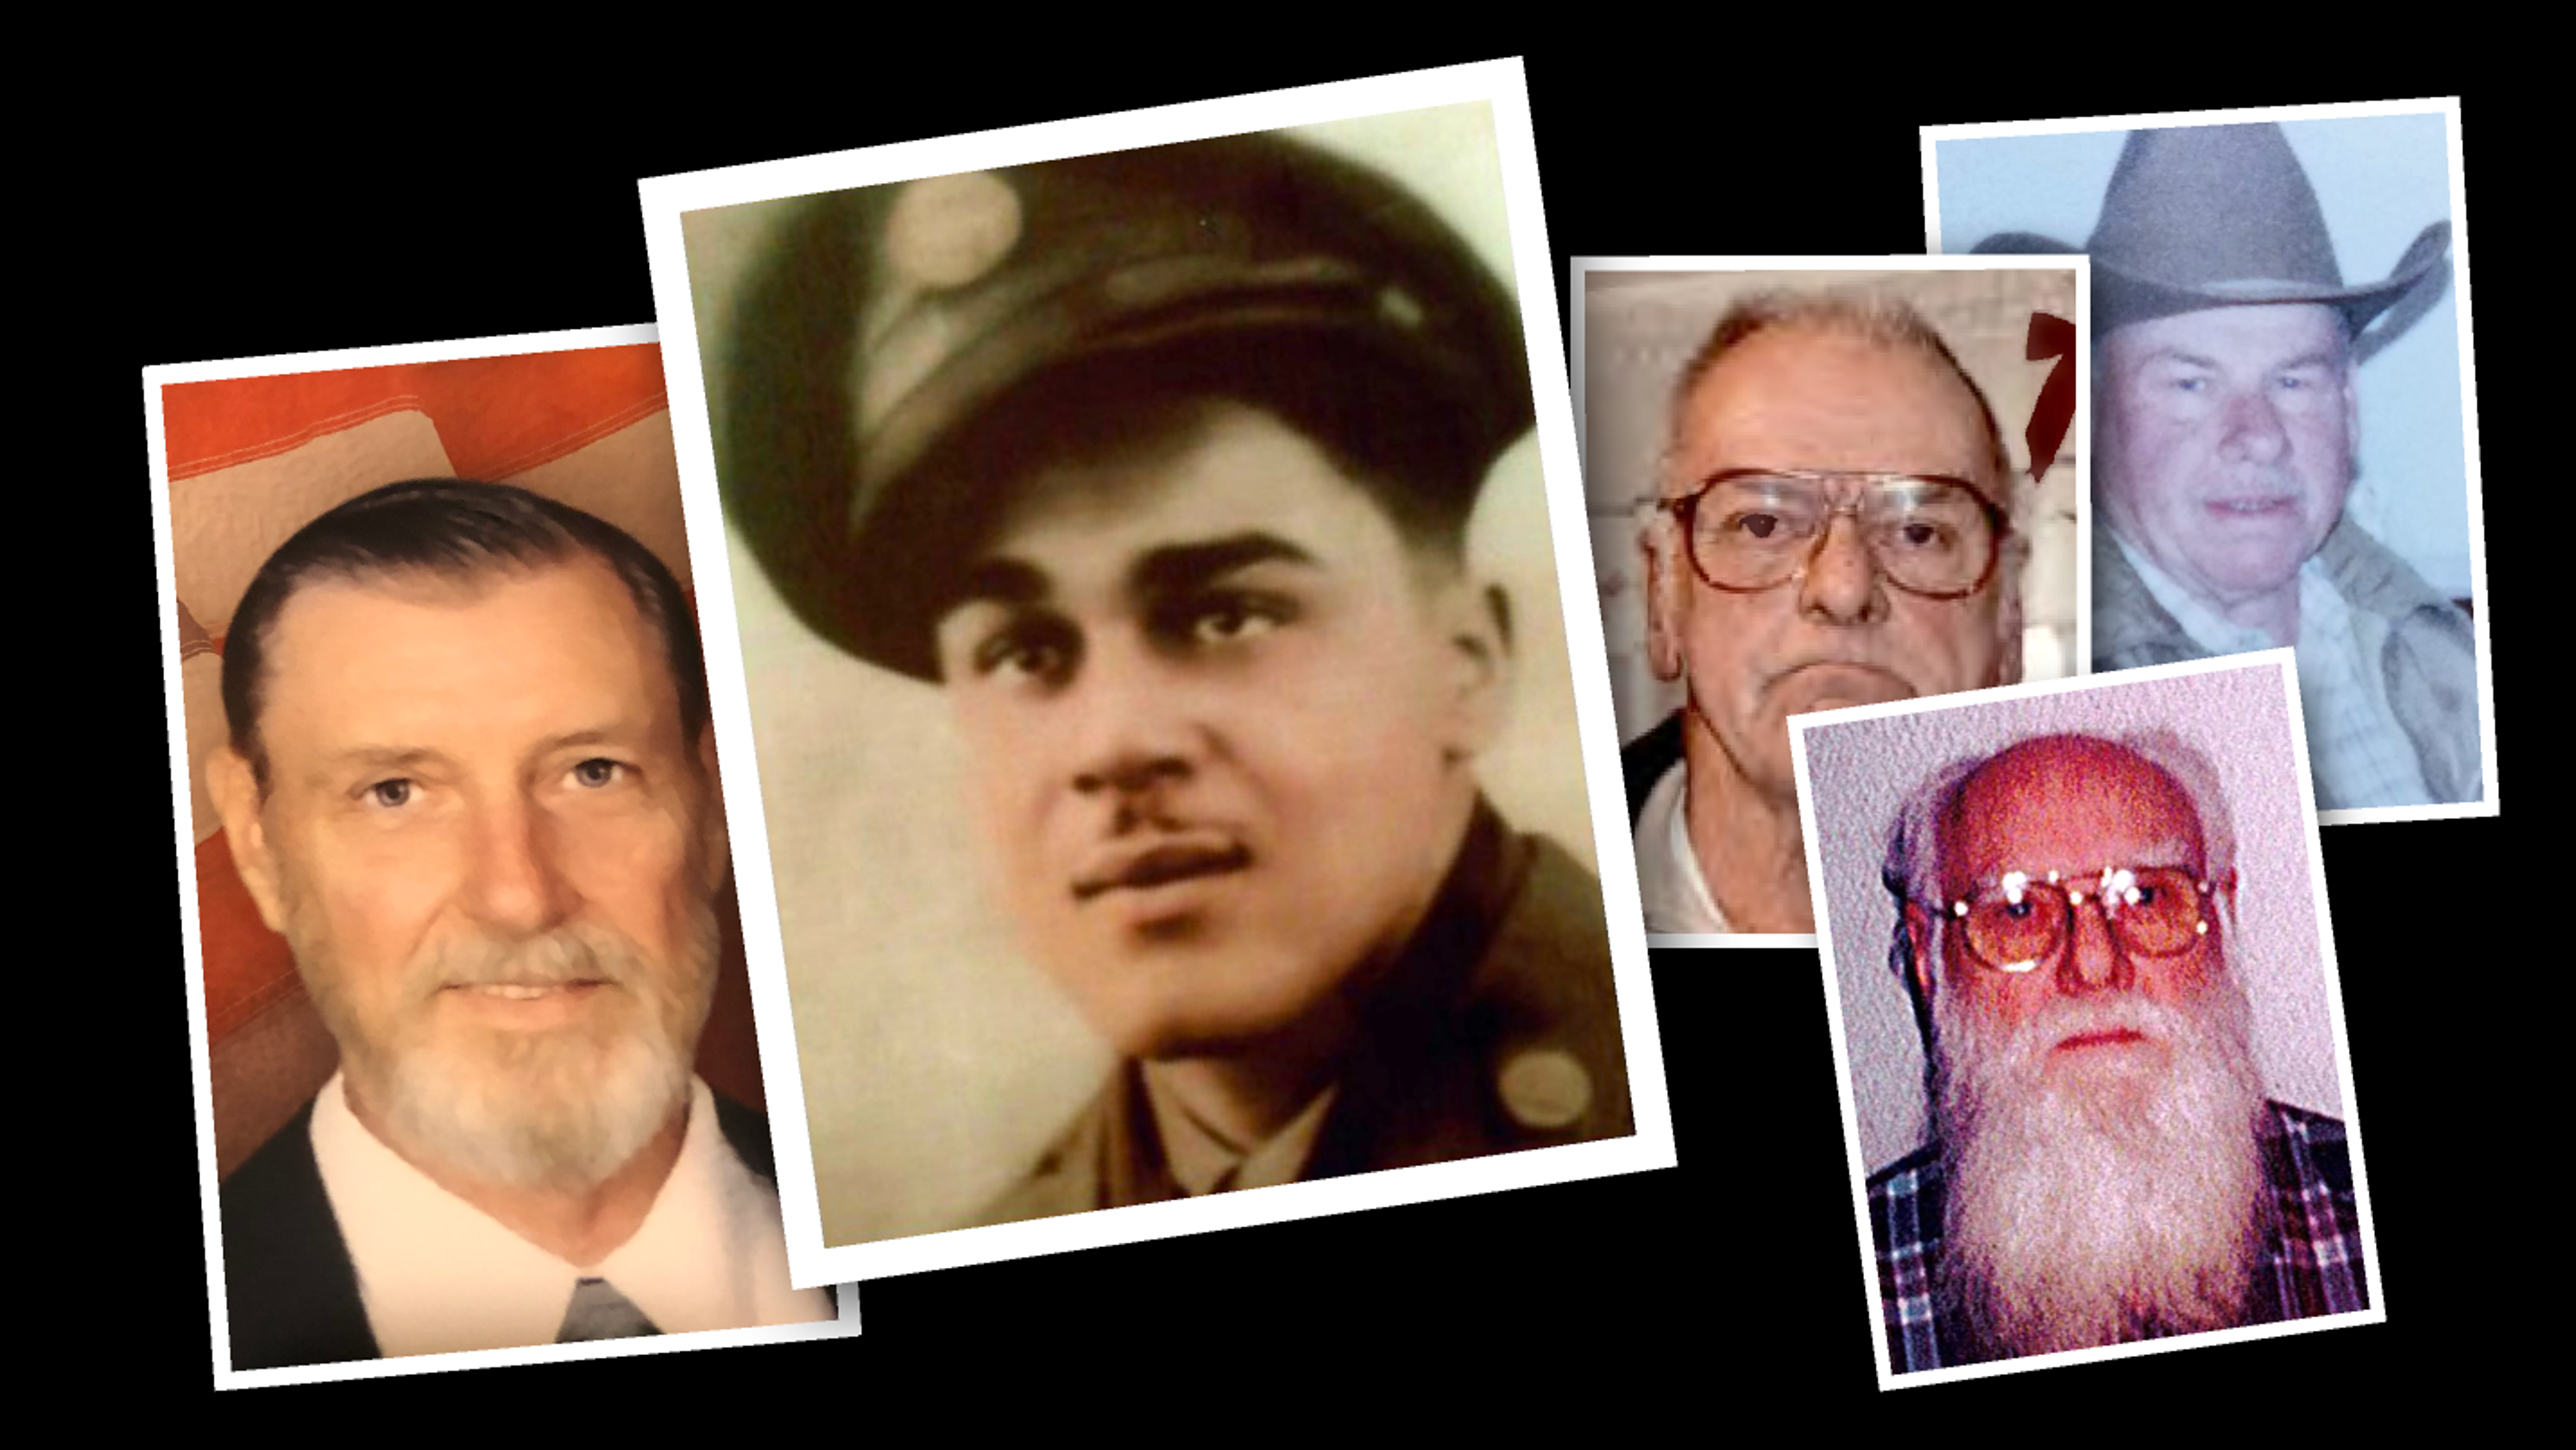 Three veterans died in three days at a VA hospital under the same suspicious circumstances. What happened?